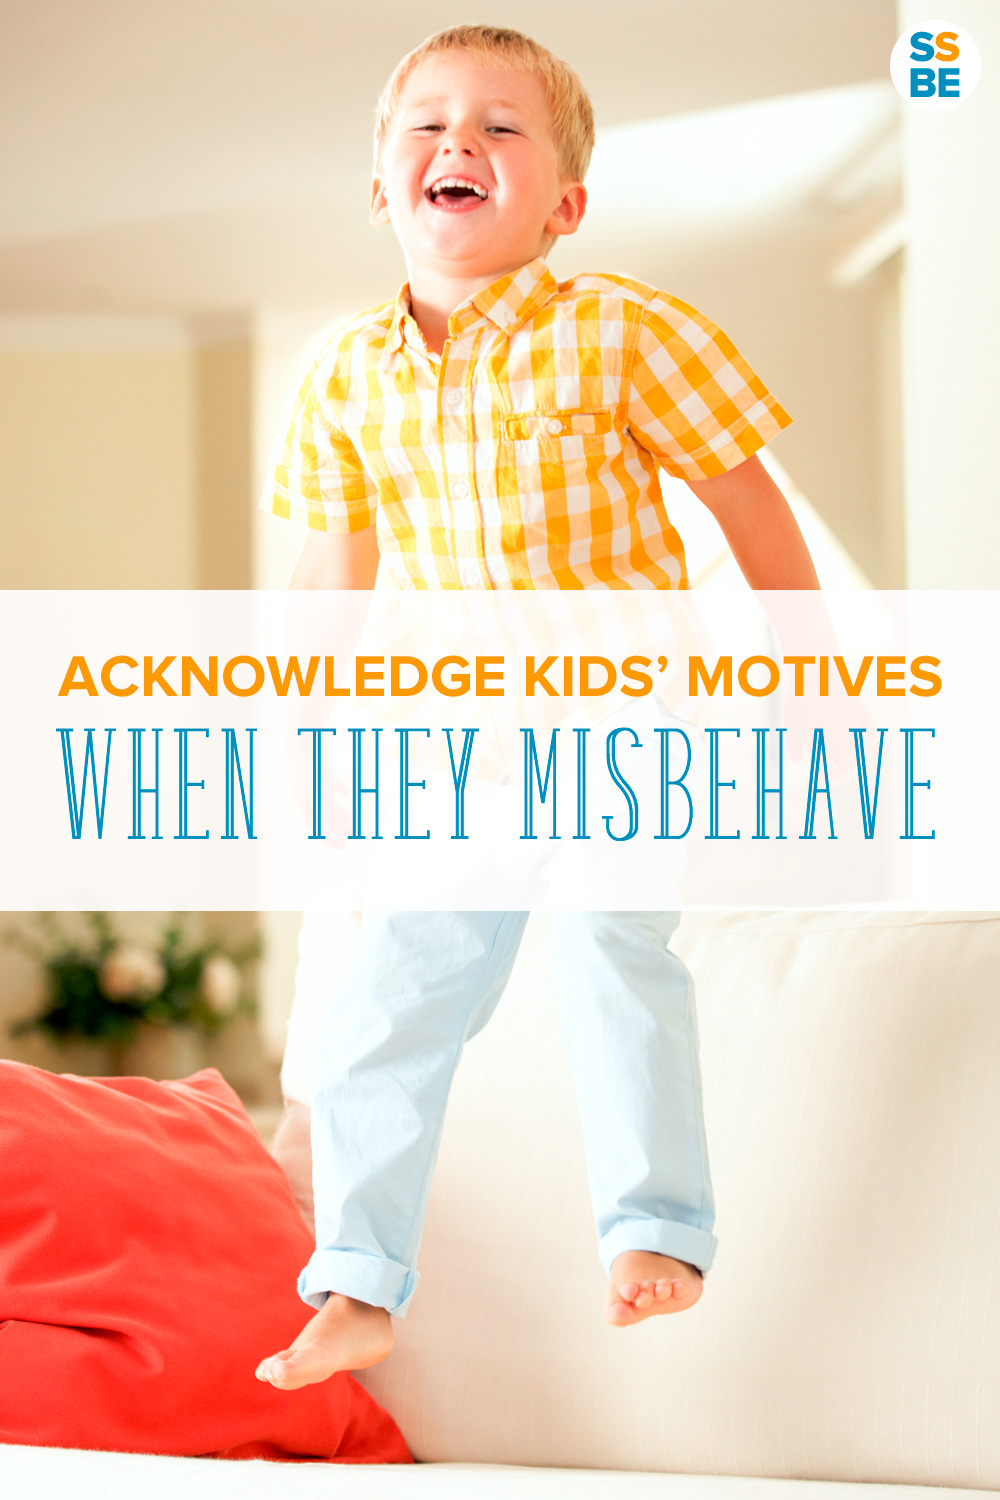 Acknowledge kids' motives and realize they aren't always trying to drive us crazy. They're exploring and discovering their world in ways they know how.